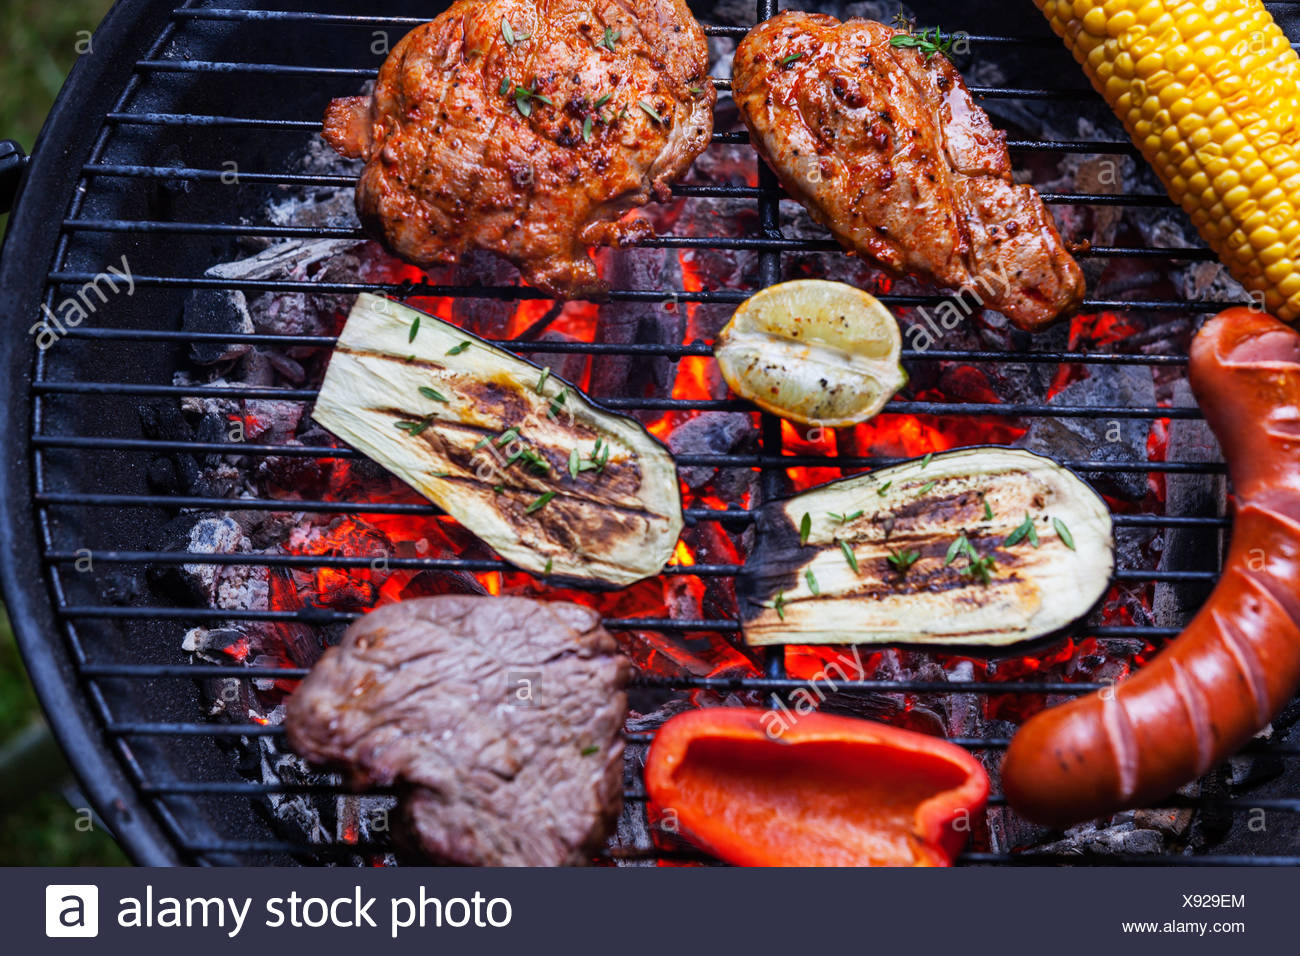 Image result for photos of broiling food